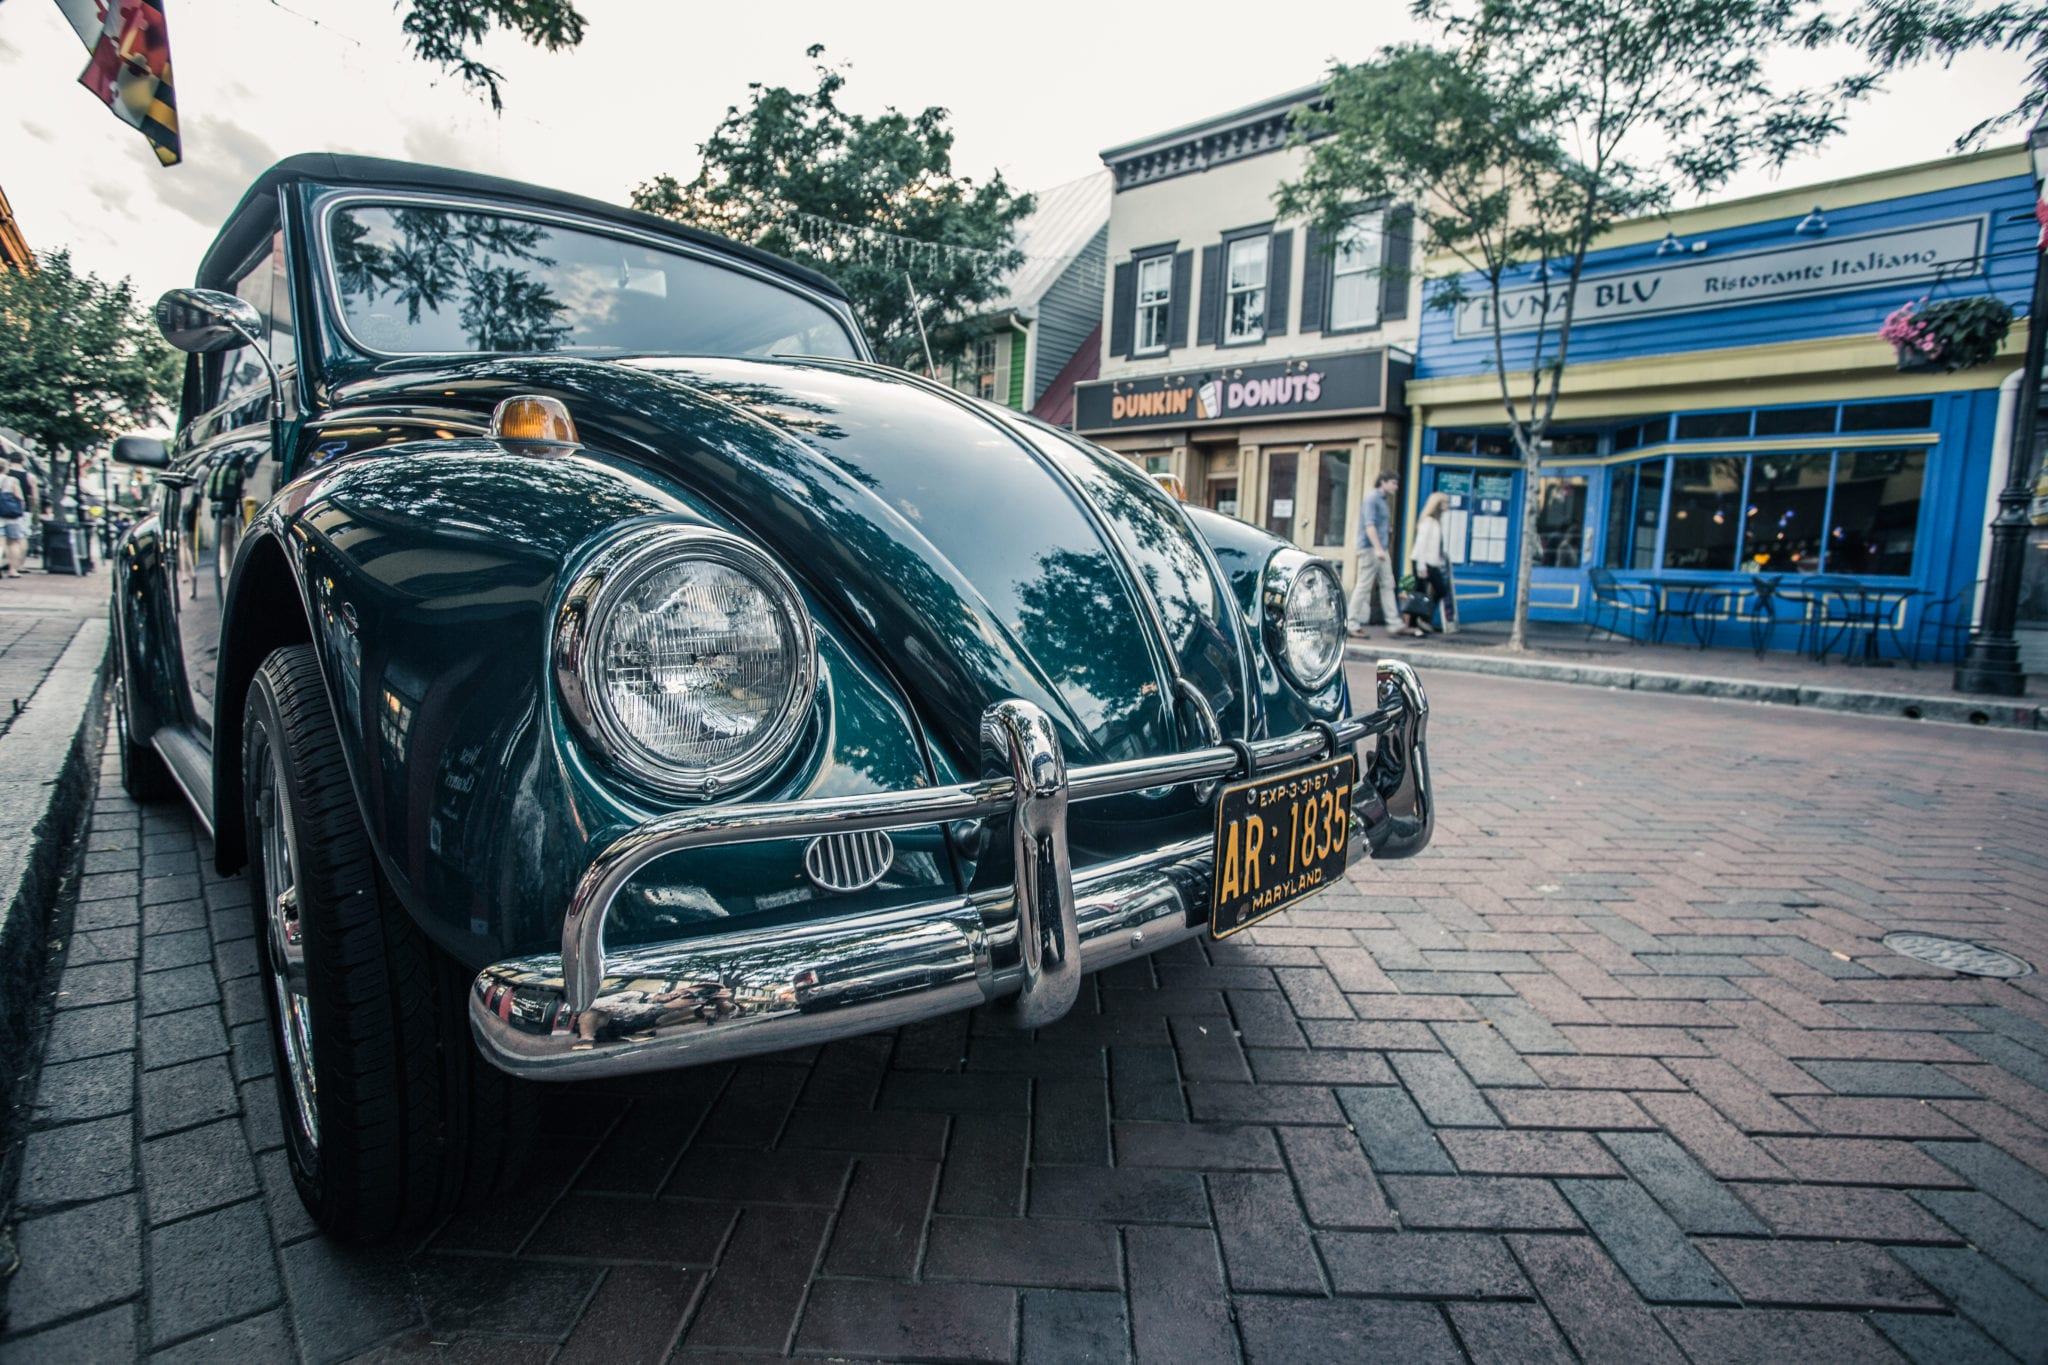 volkswagen in the rehearse trans pictures drummers avoid neighbours ovu to park news annapolis car annoying